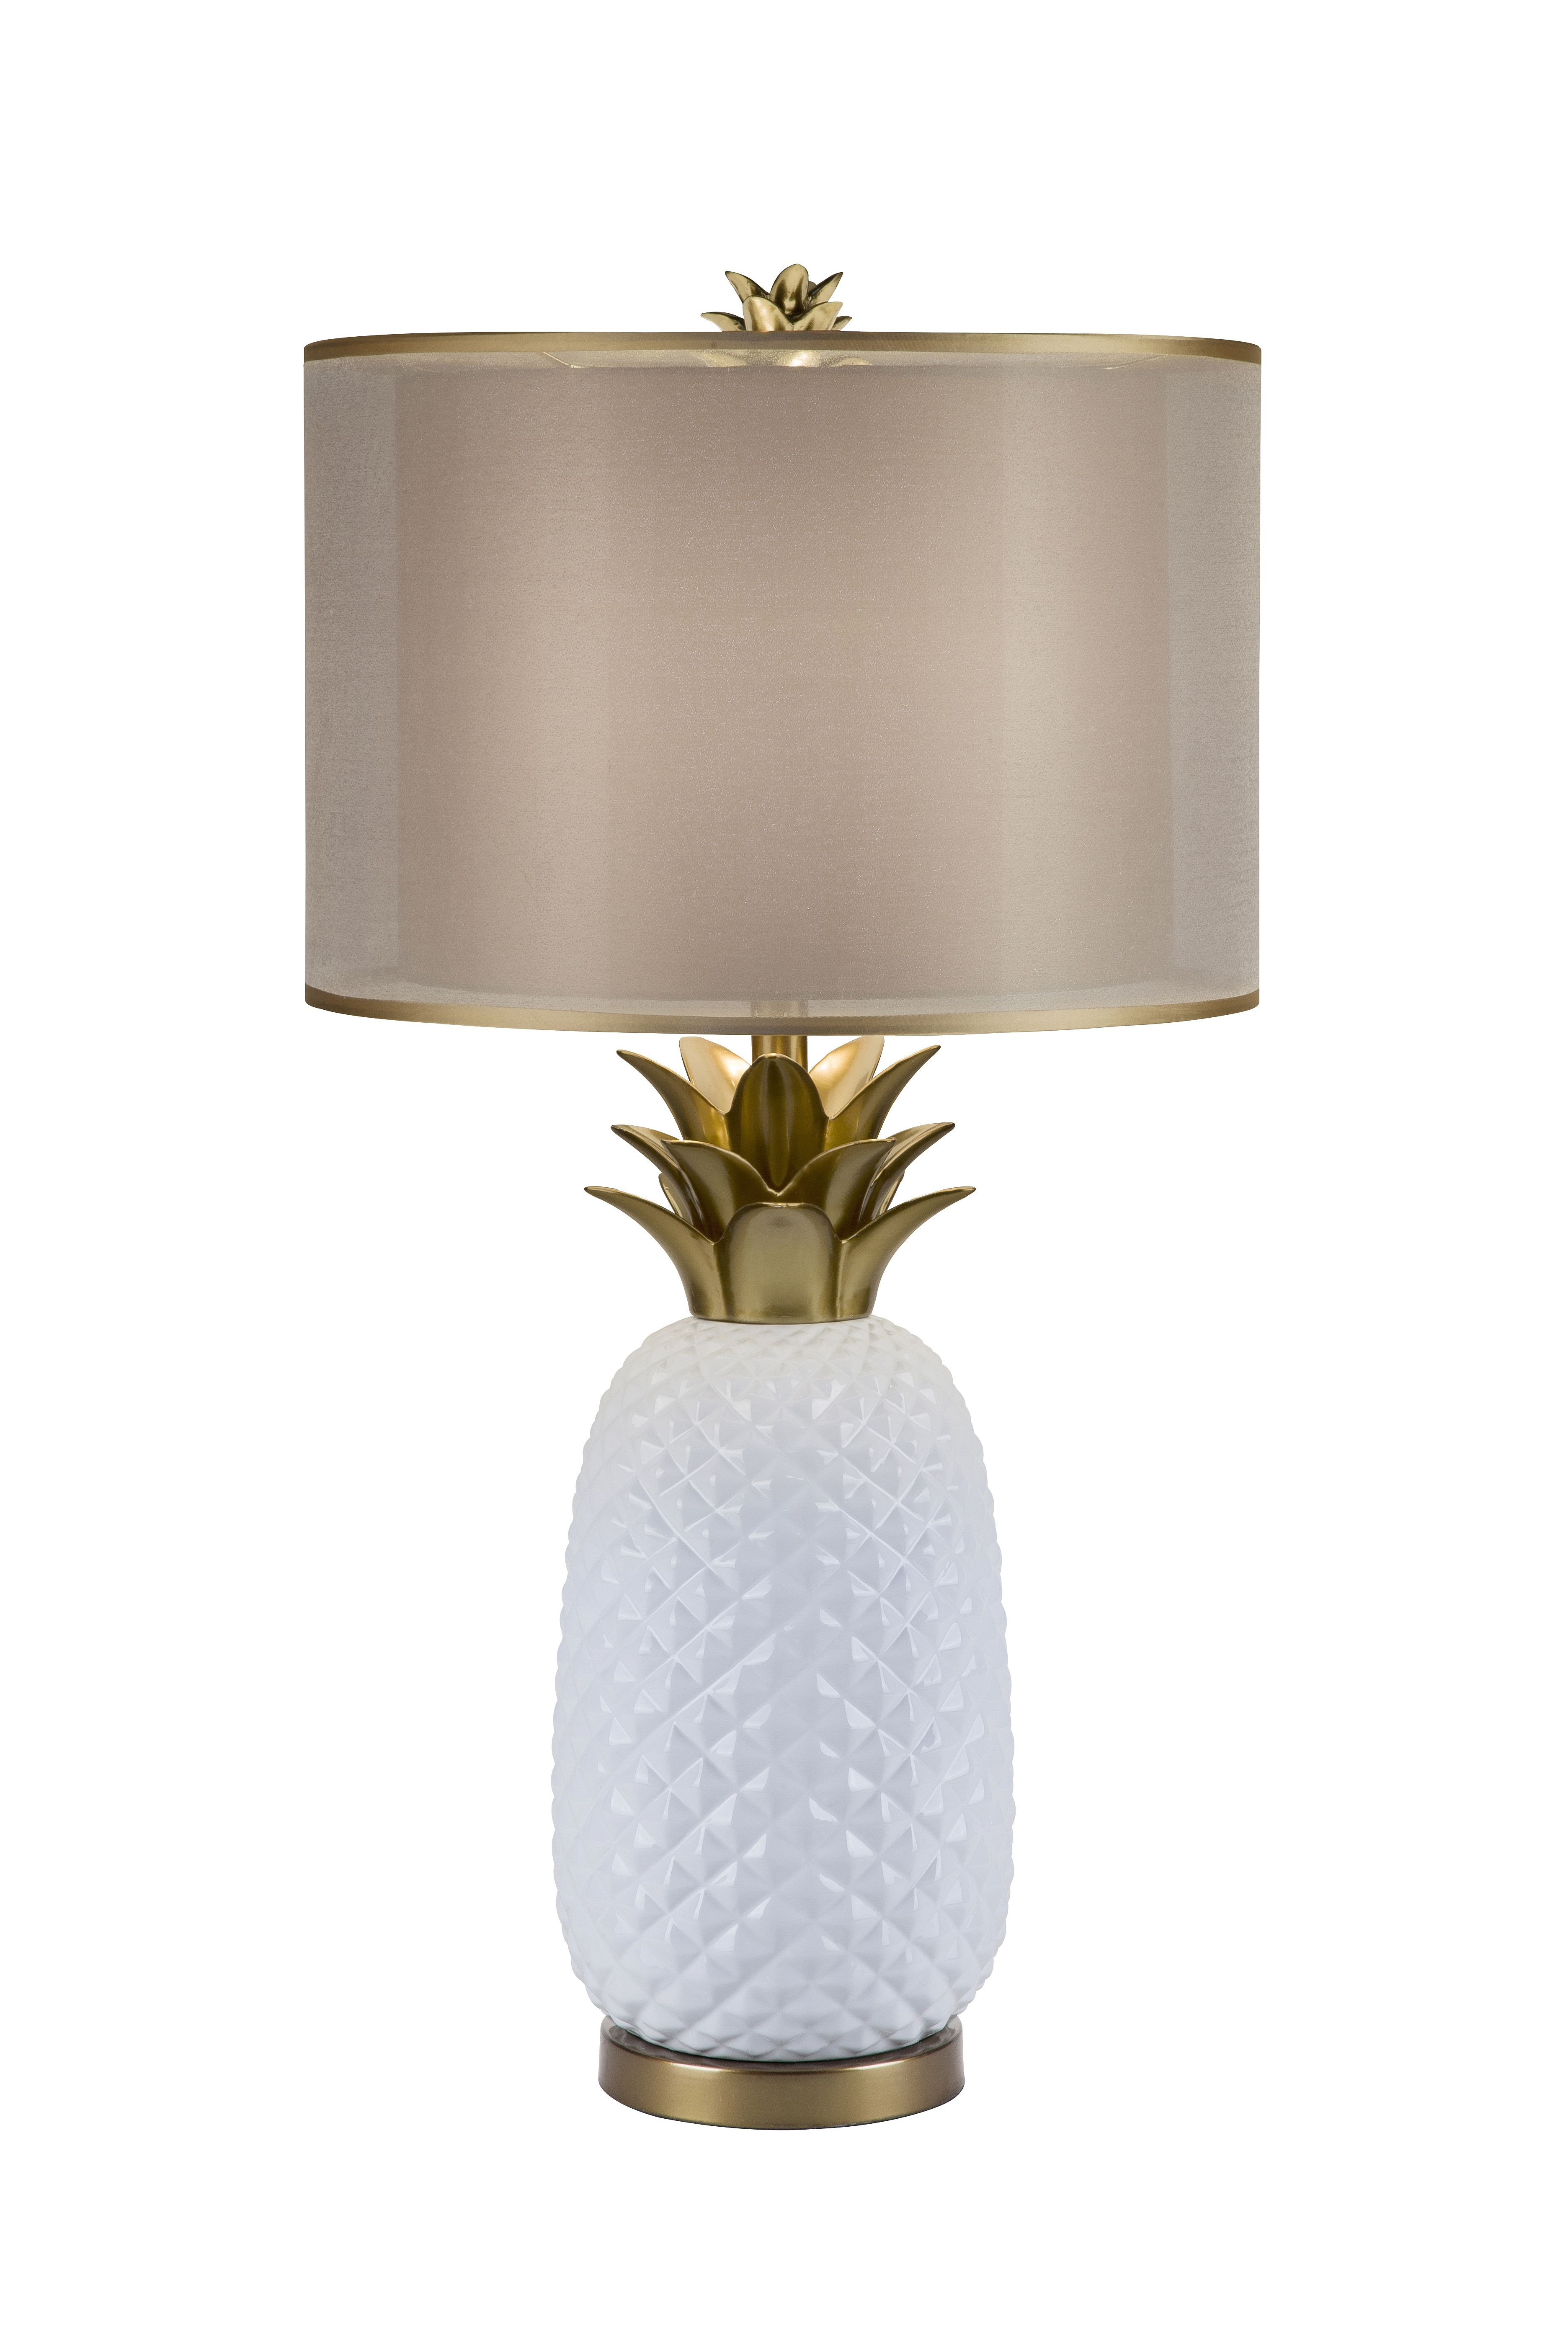 Tropical Light A Glamorous White Pineapple Accented With Striking